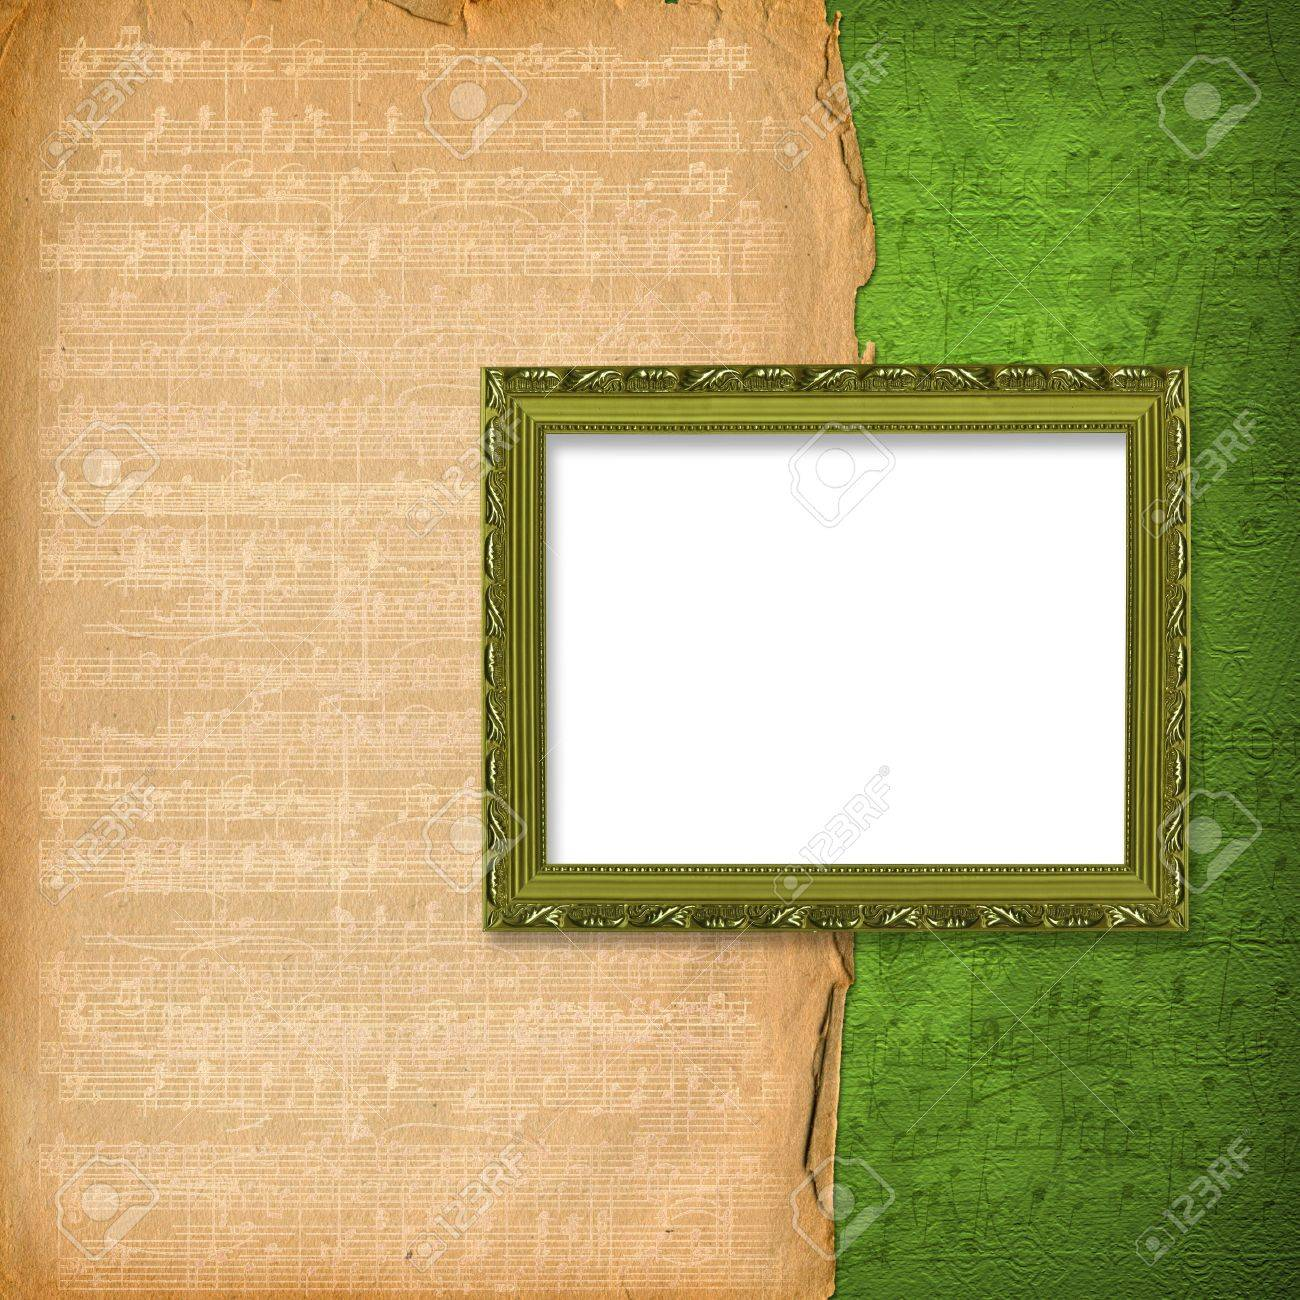 grunge wooden frames on the abstract musical background Stock Photo - 6852837